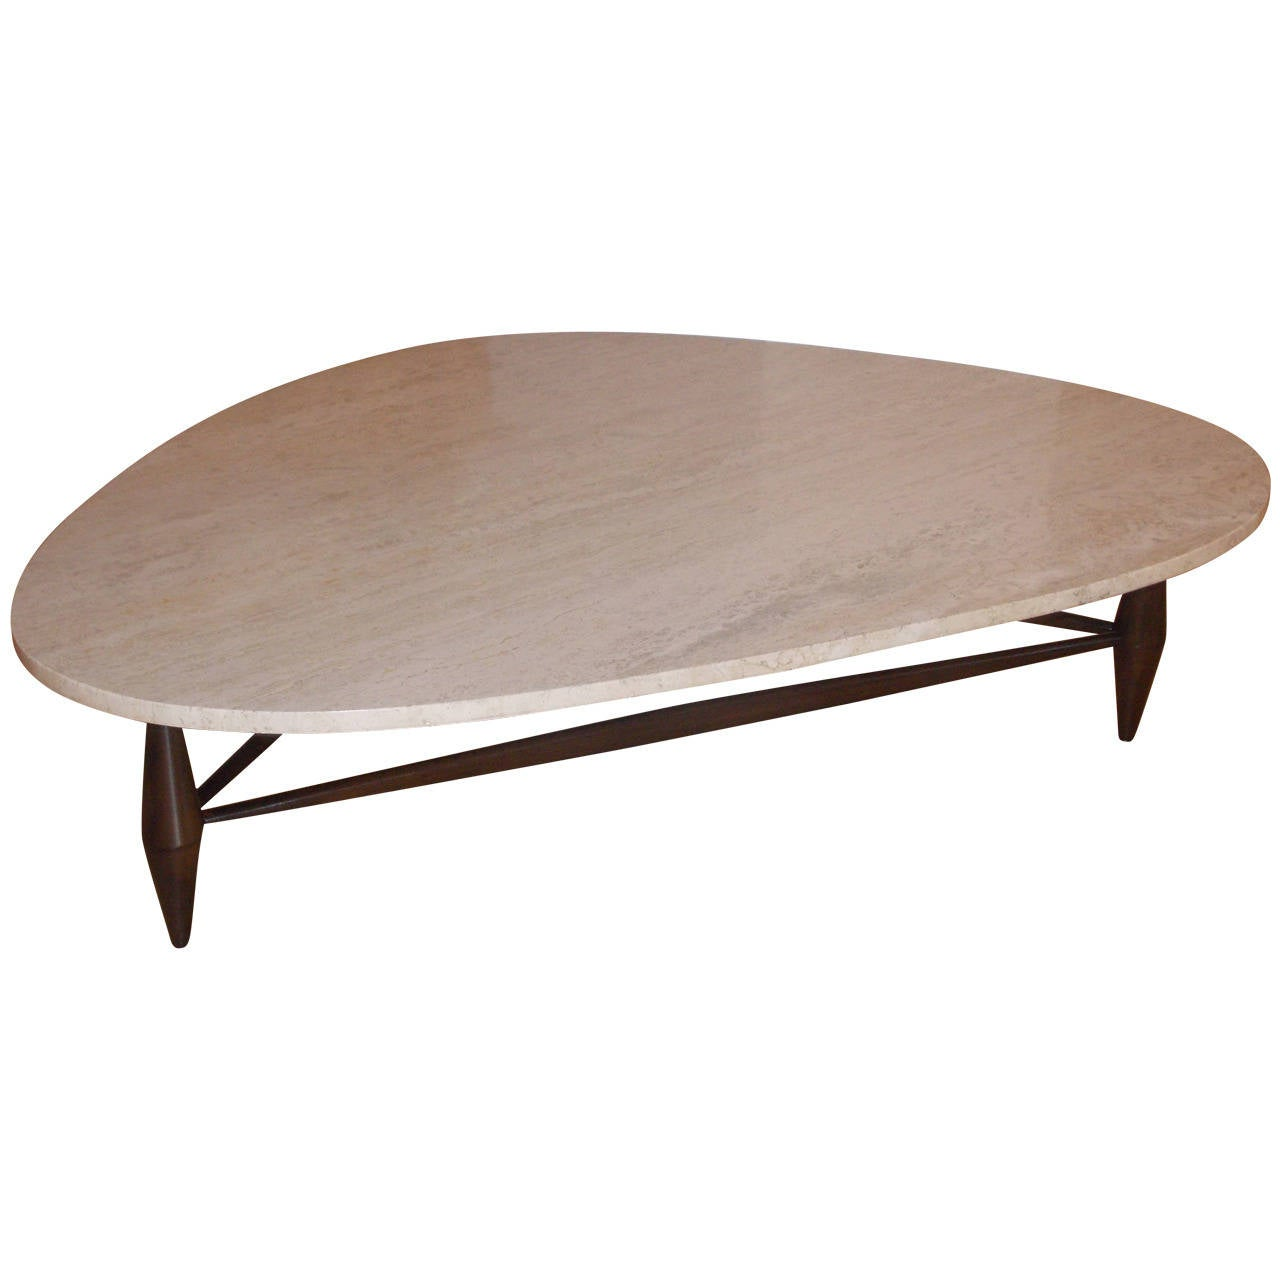 Mid century marble top coffee table at 1stdibs Mid century coffee tables